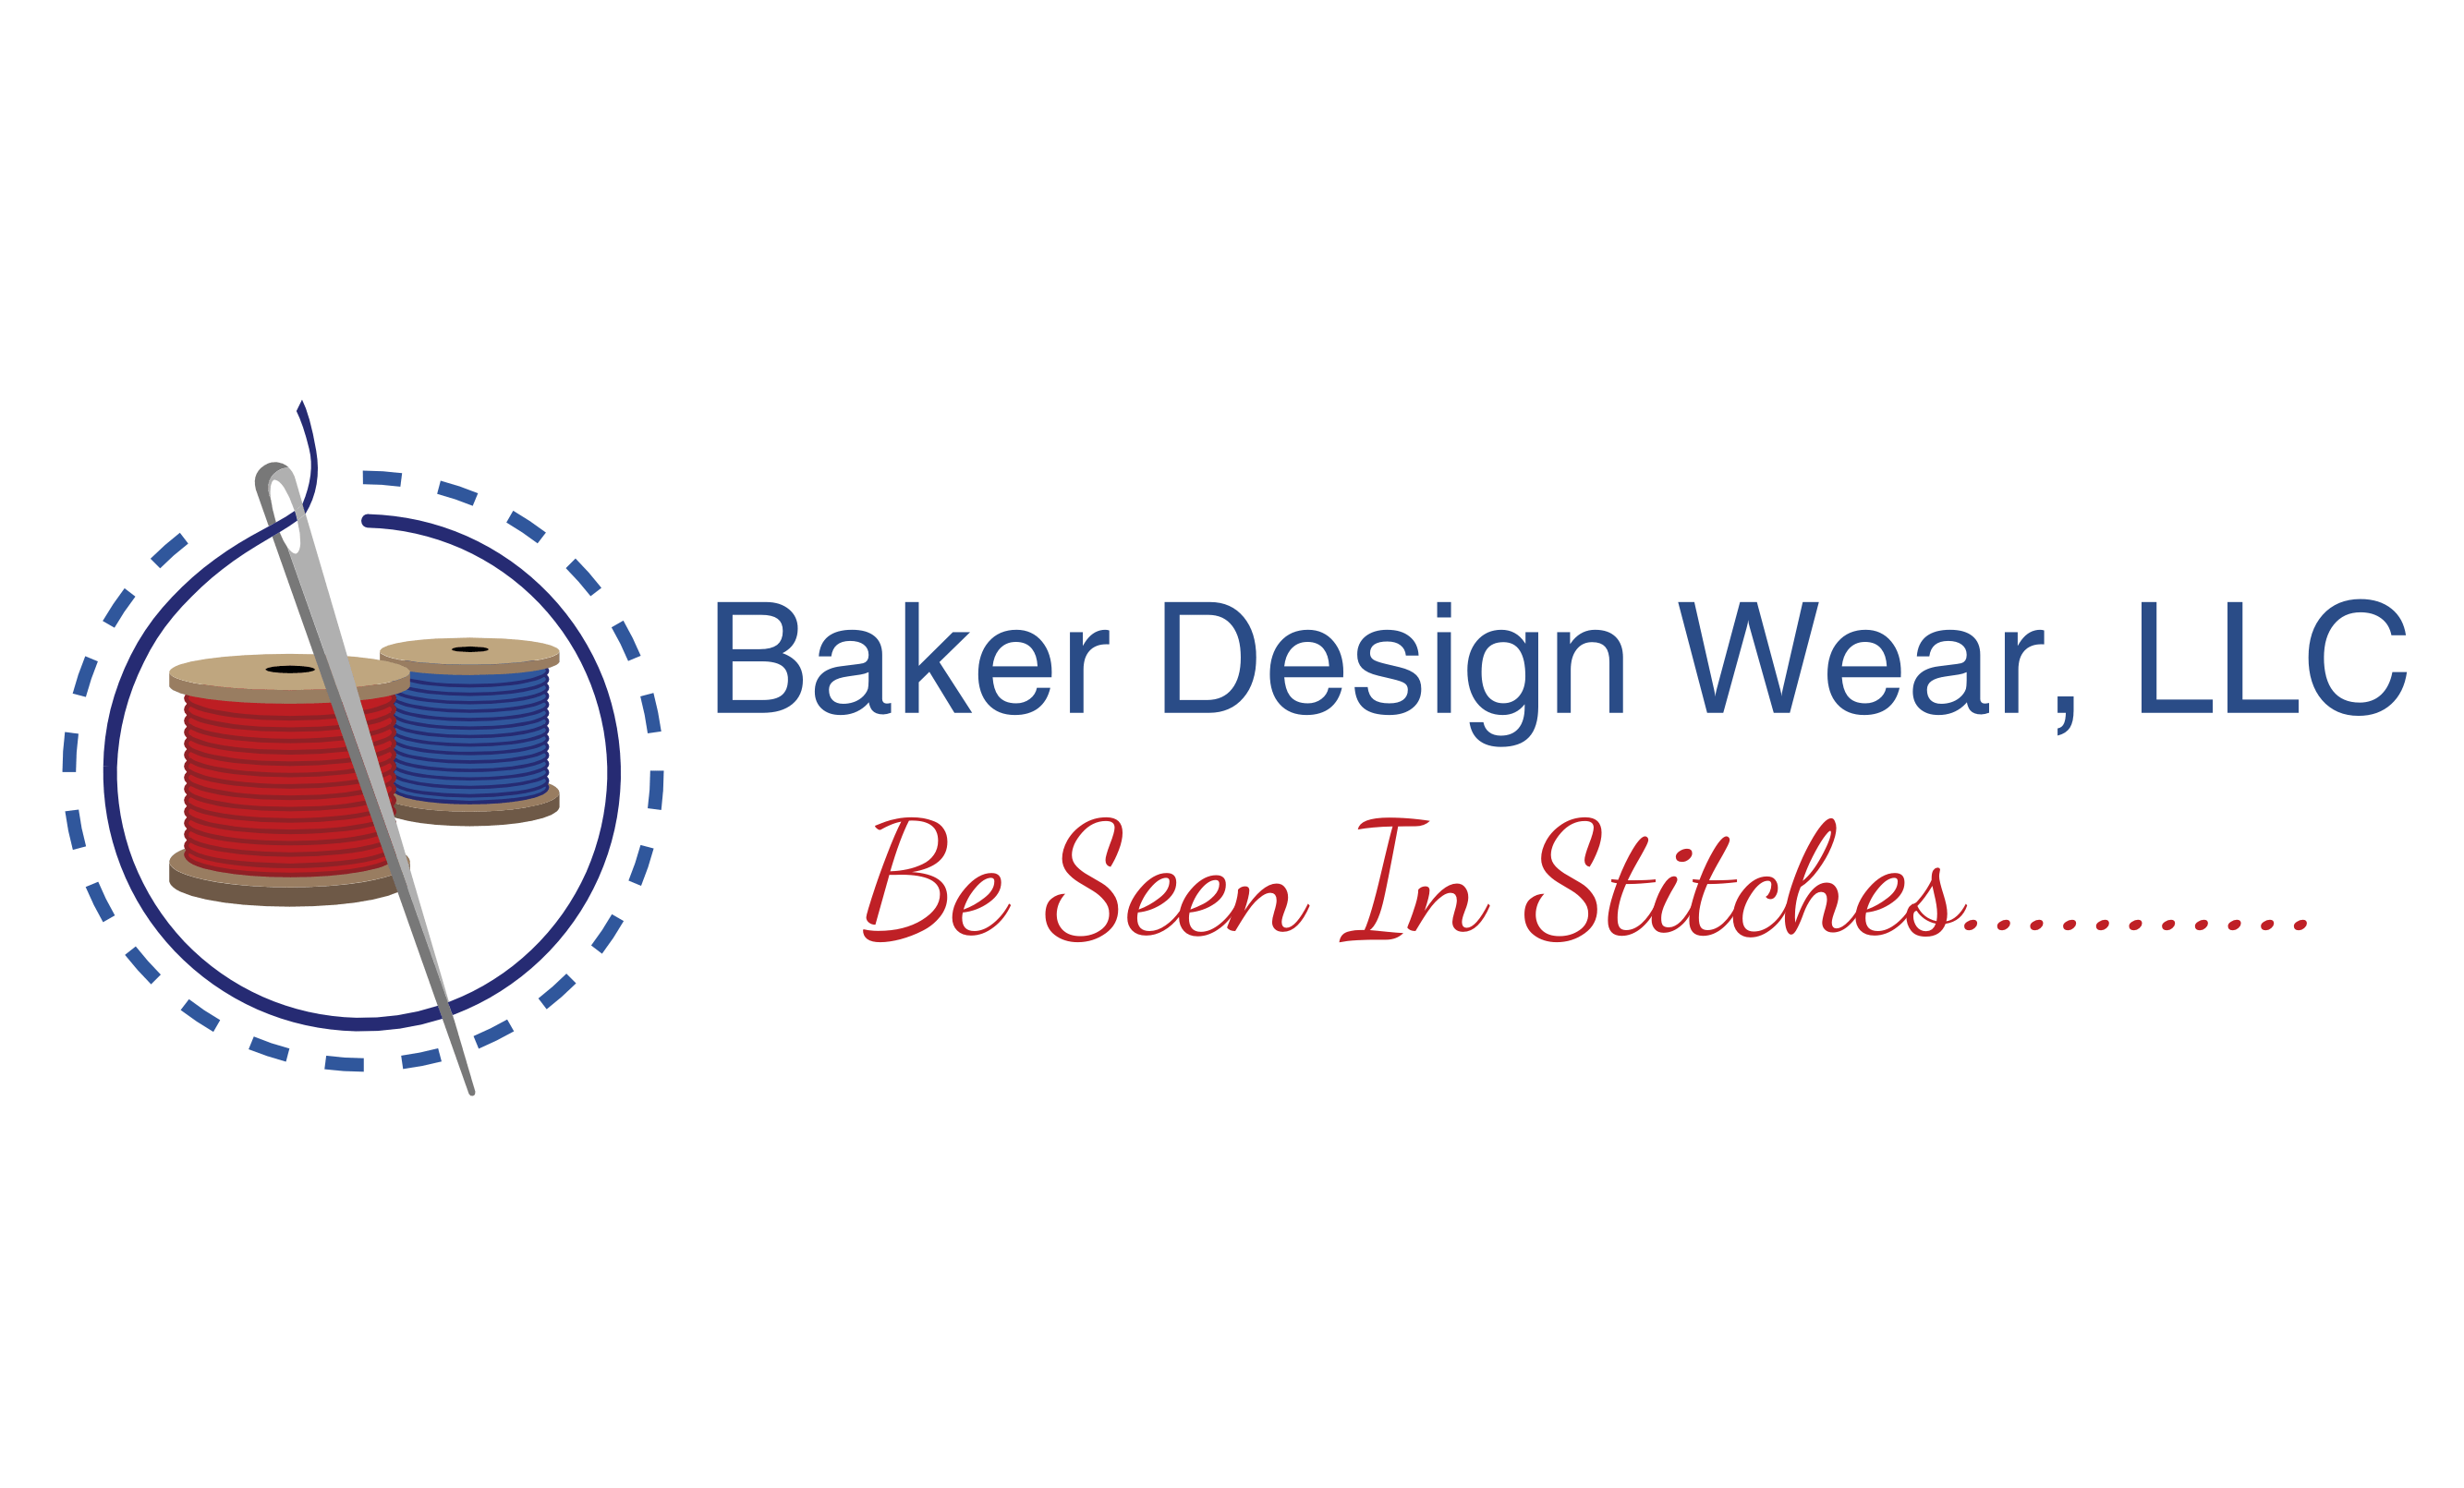 Baker Design Wear LLC Logo